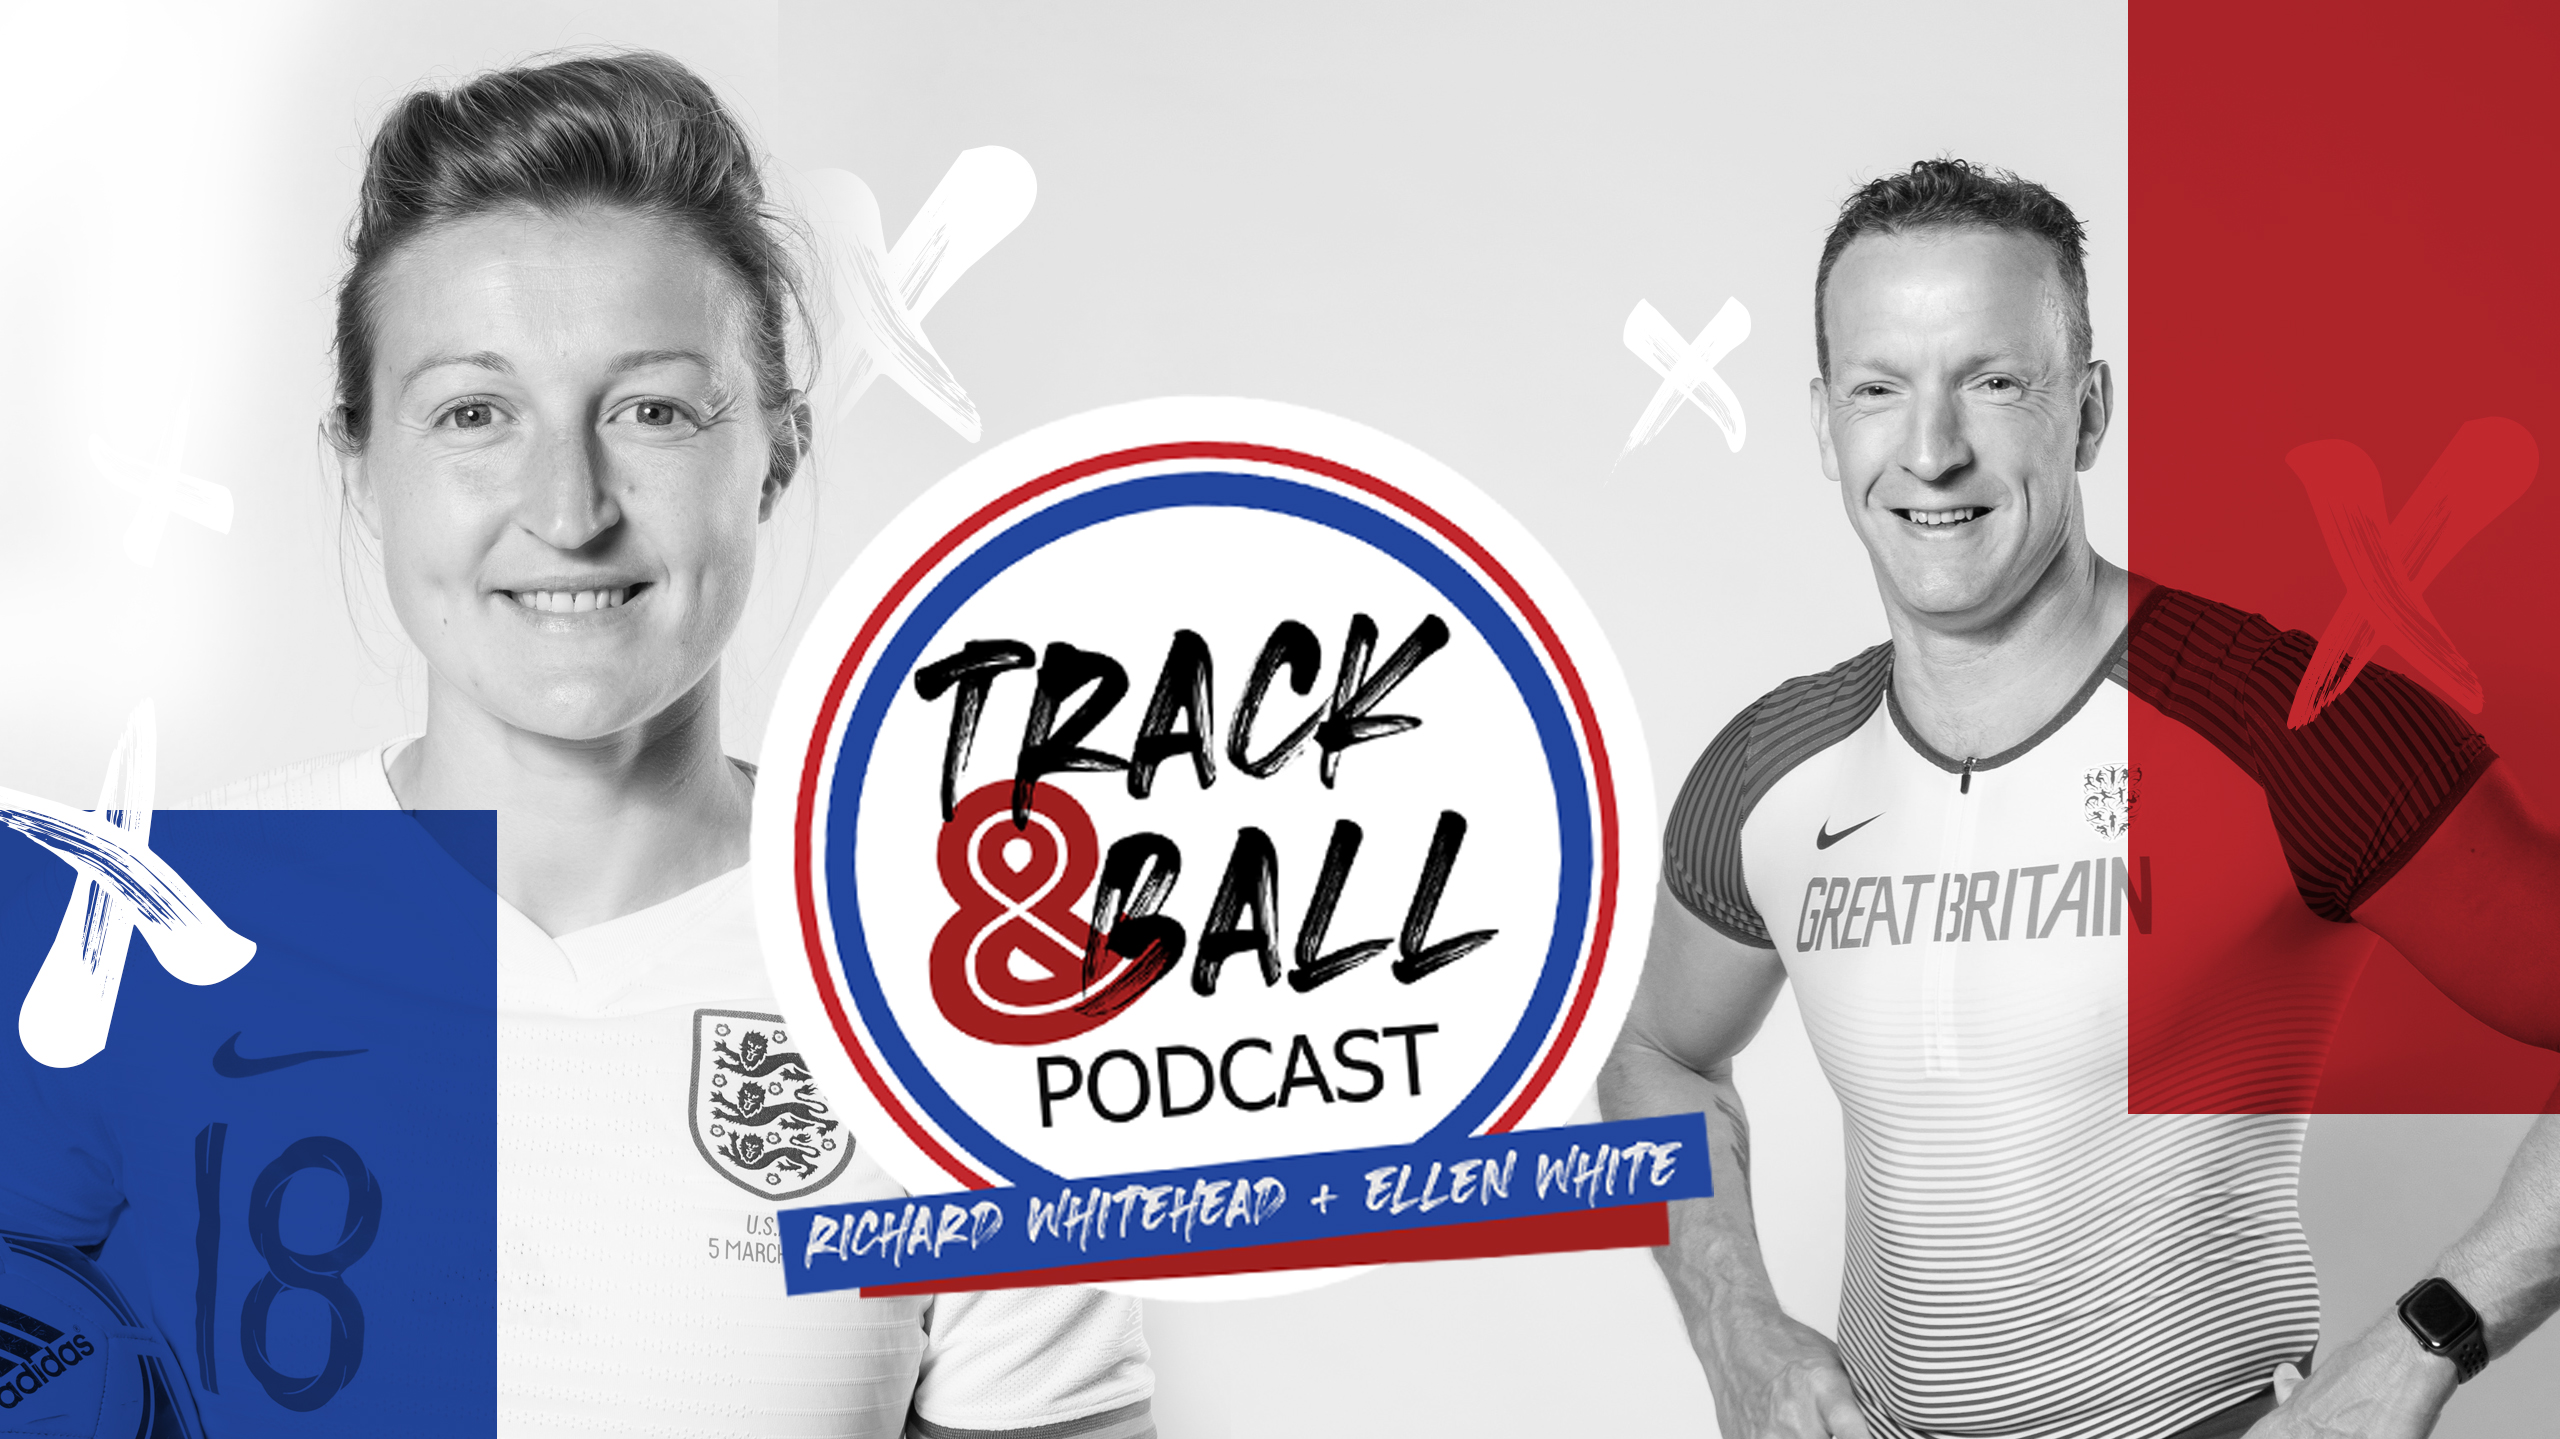 Track and Ball Podcast